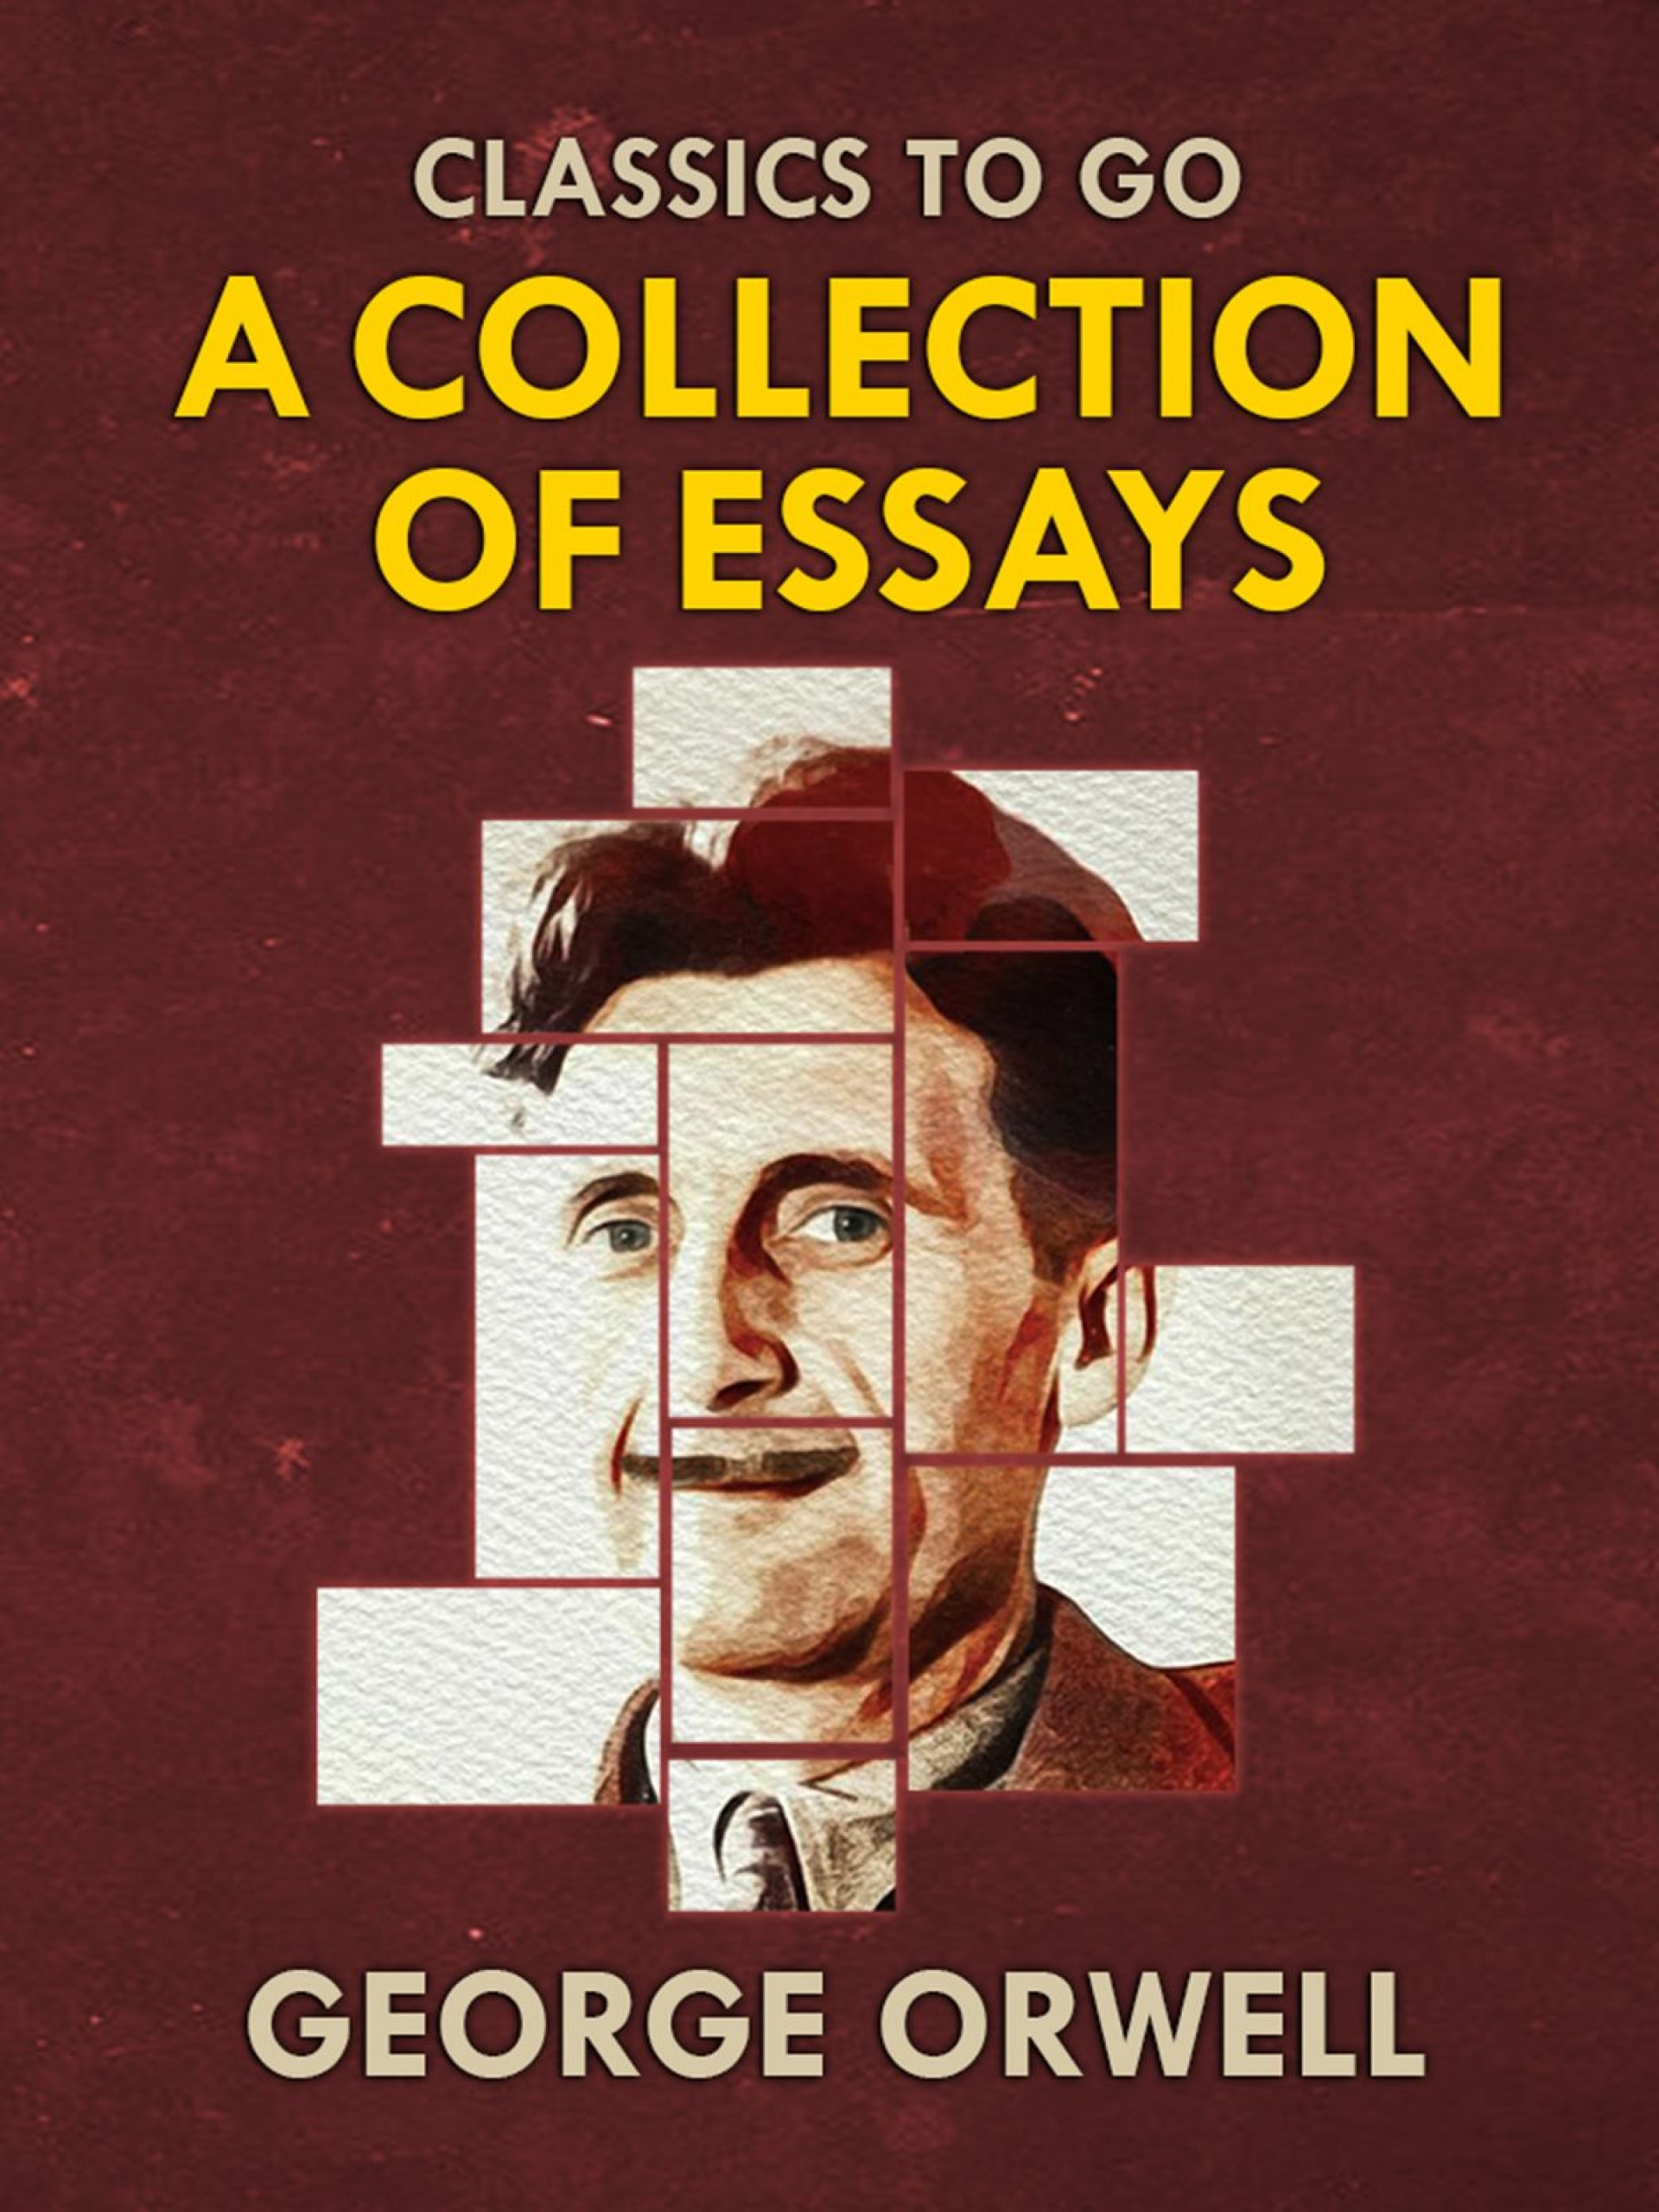 024 Collections Of George Orwell Essays Essay Frightening Everyman's Library Summary Bookshop Memories 1920